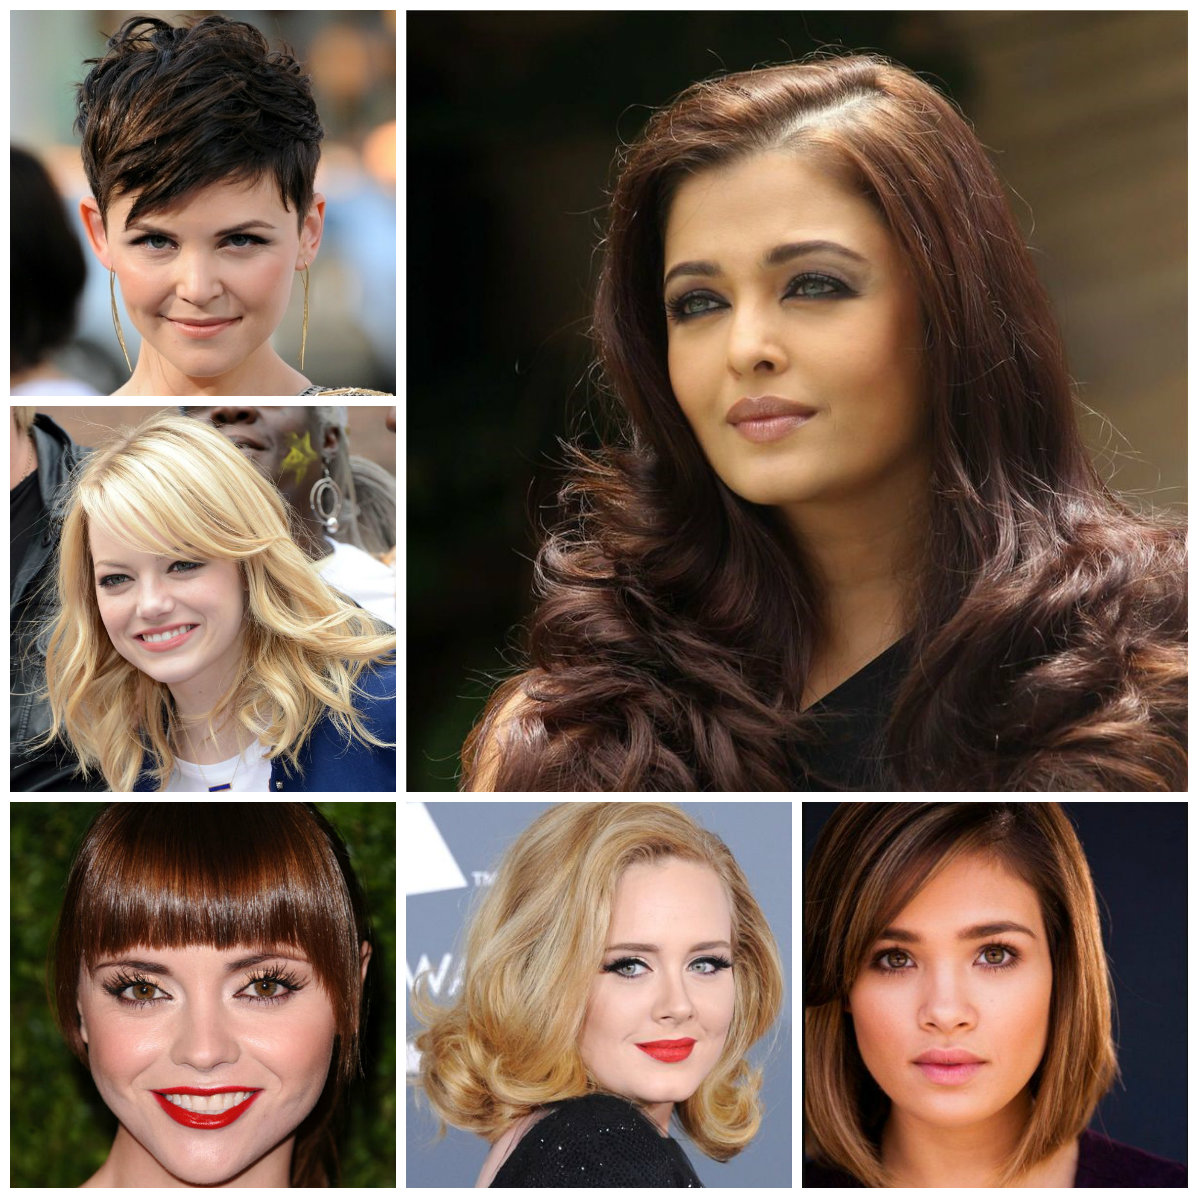 ... hairstyles for round faces 2016